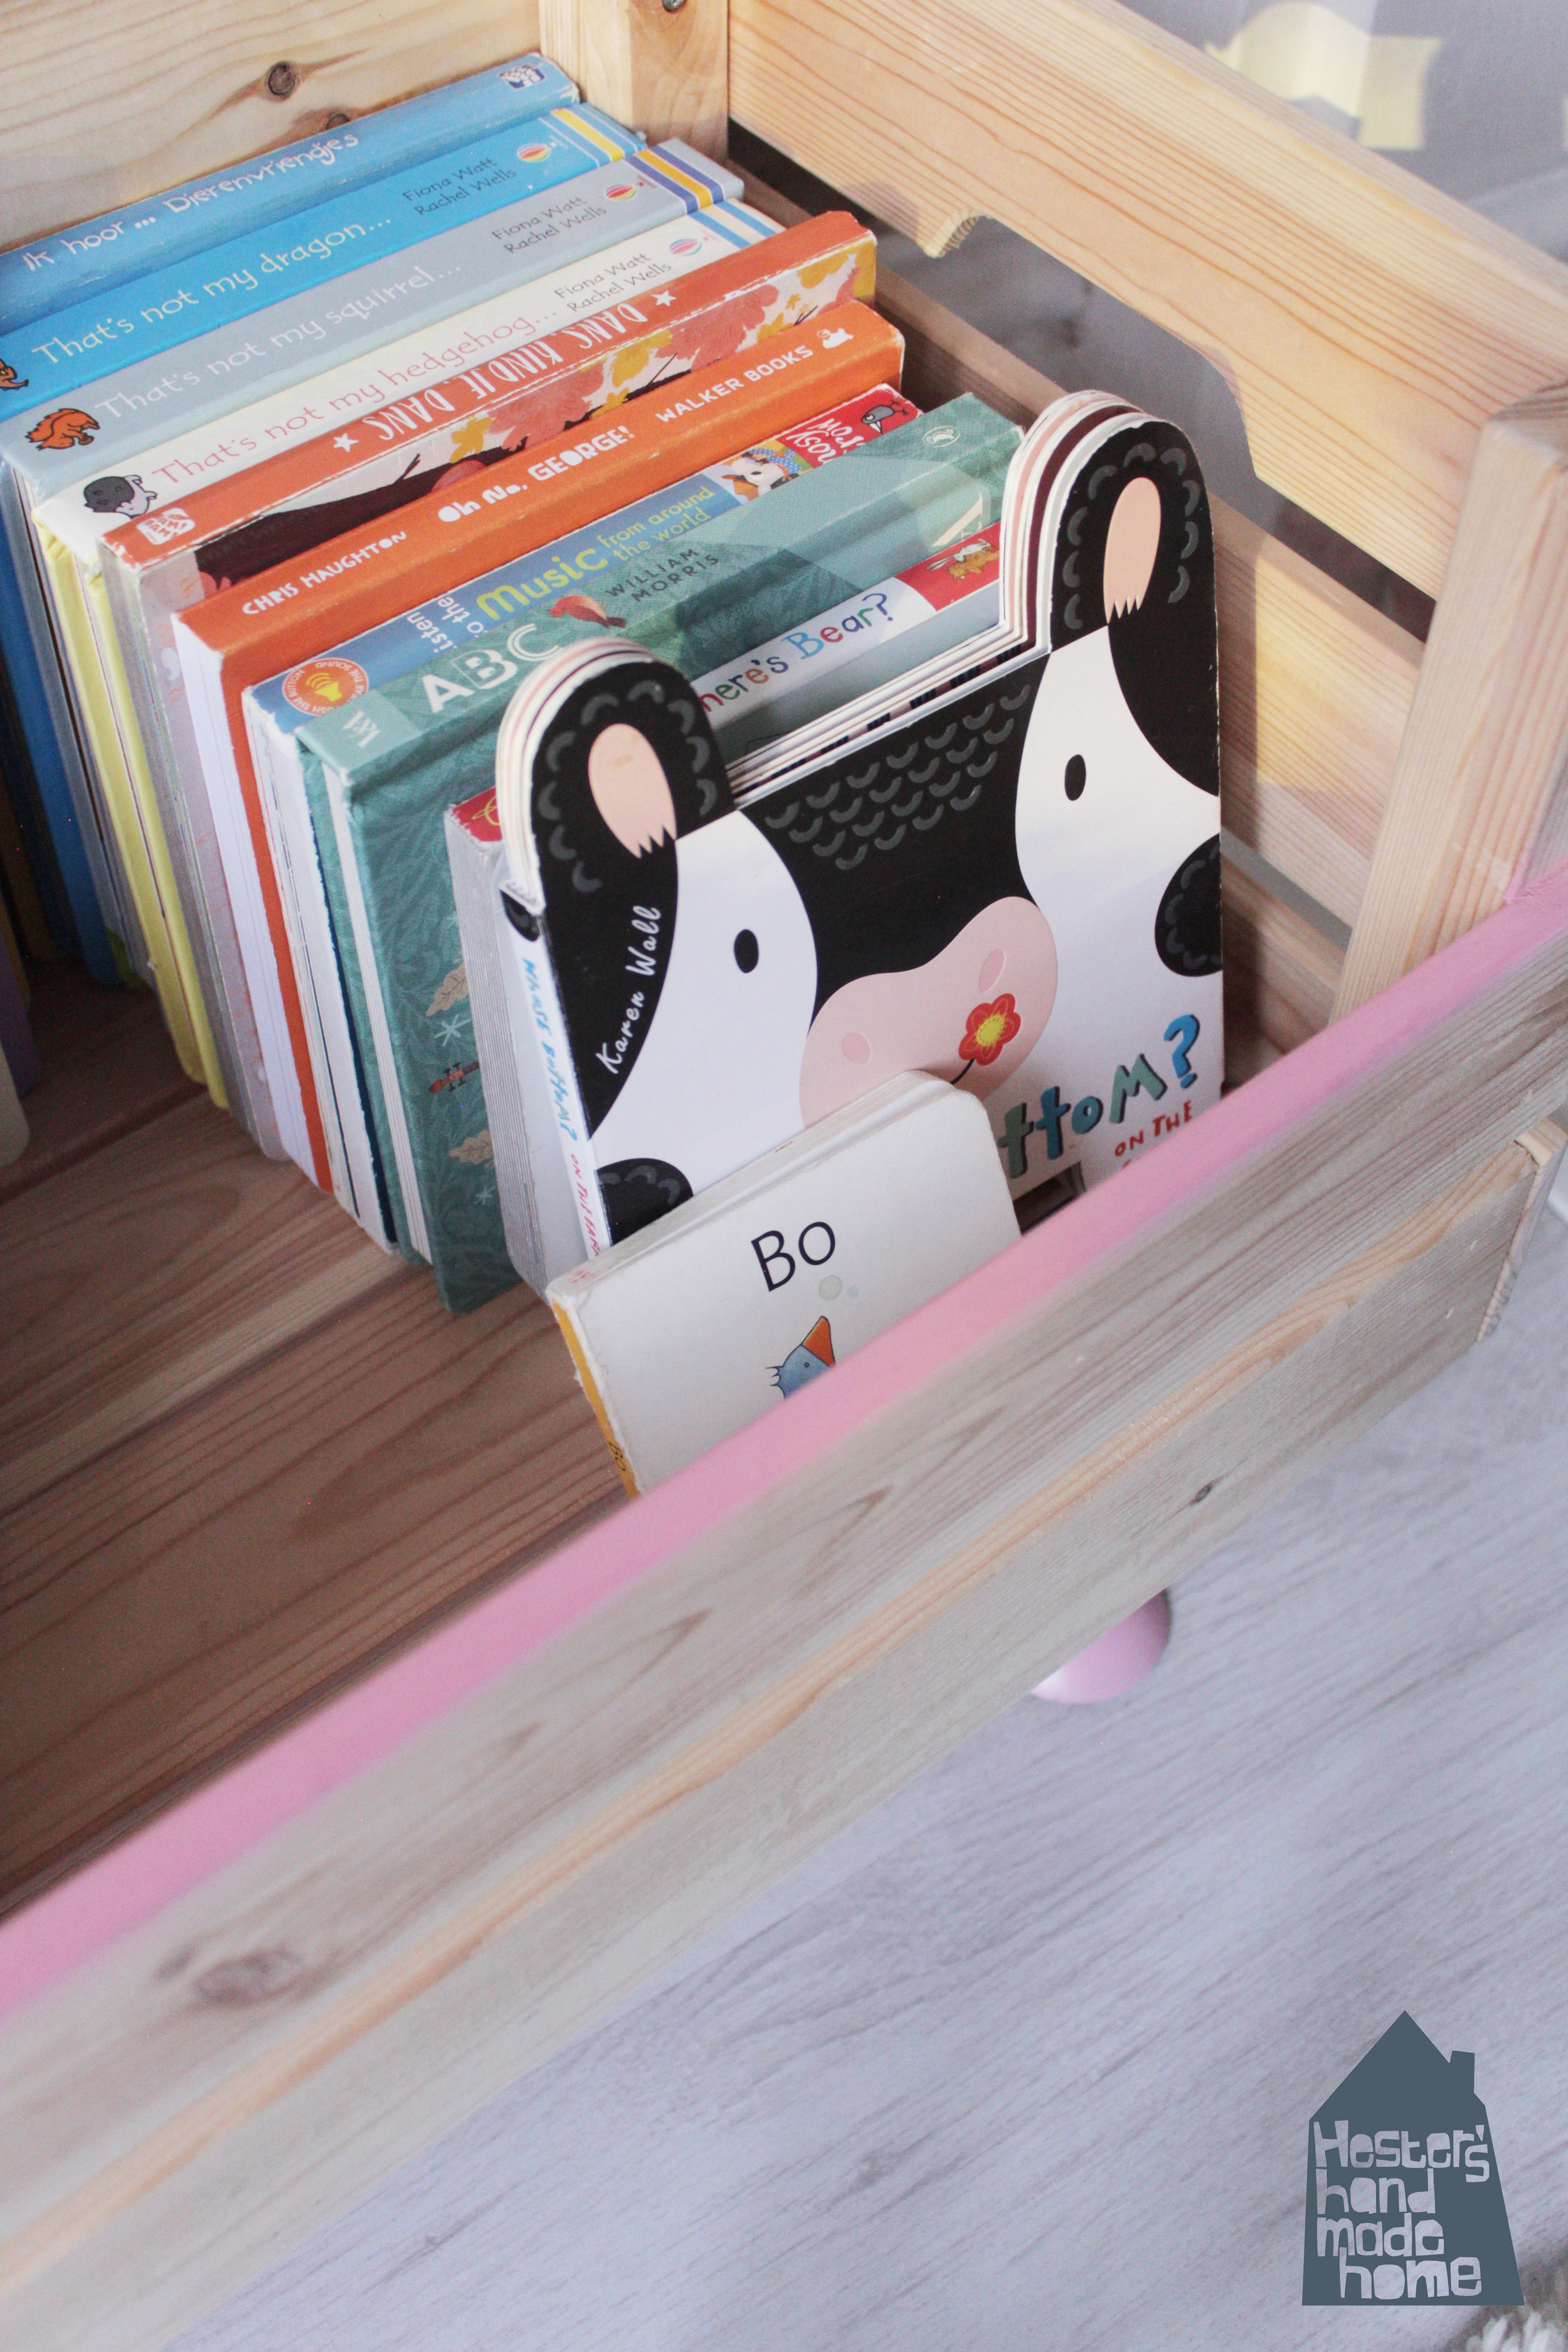 Ikea Knagglig box hack to book storage for a toddler by www.hestershandmadehome.com